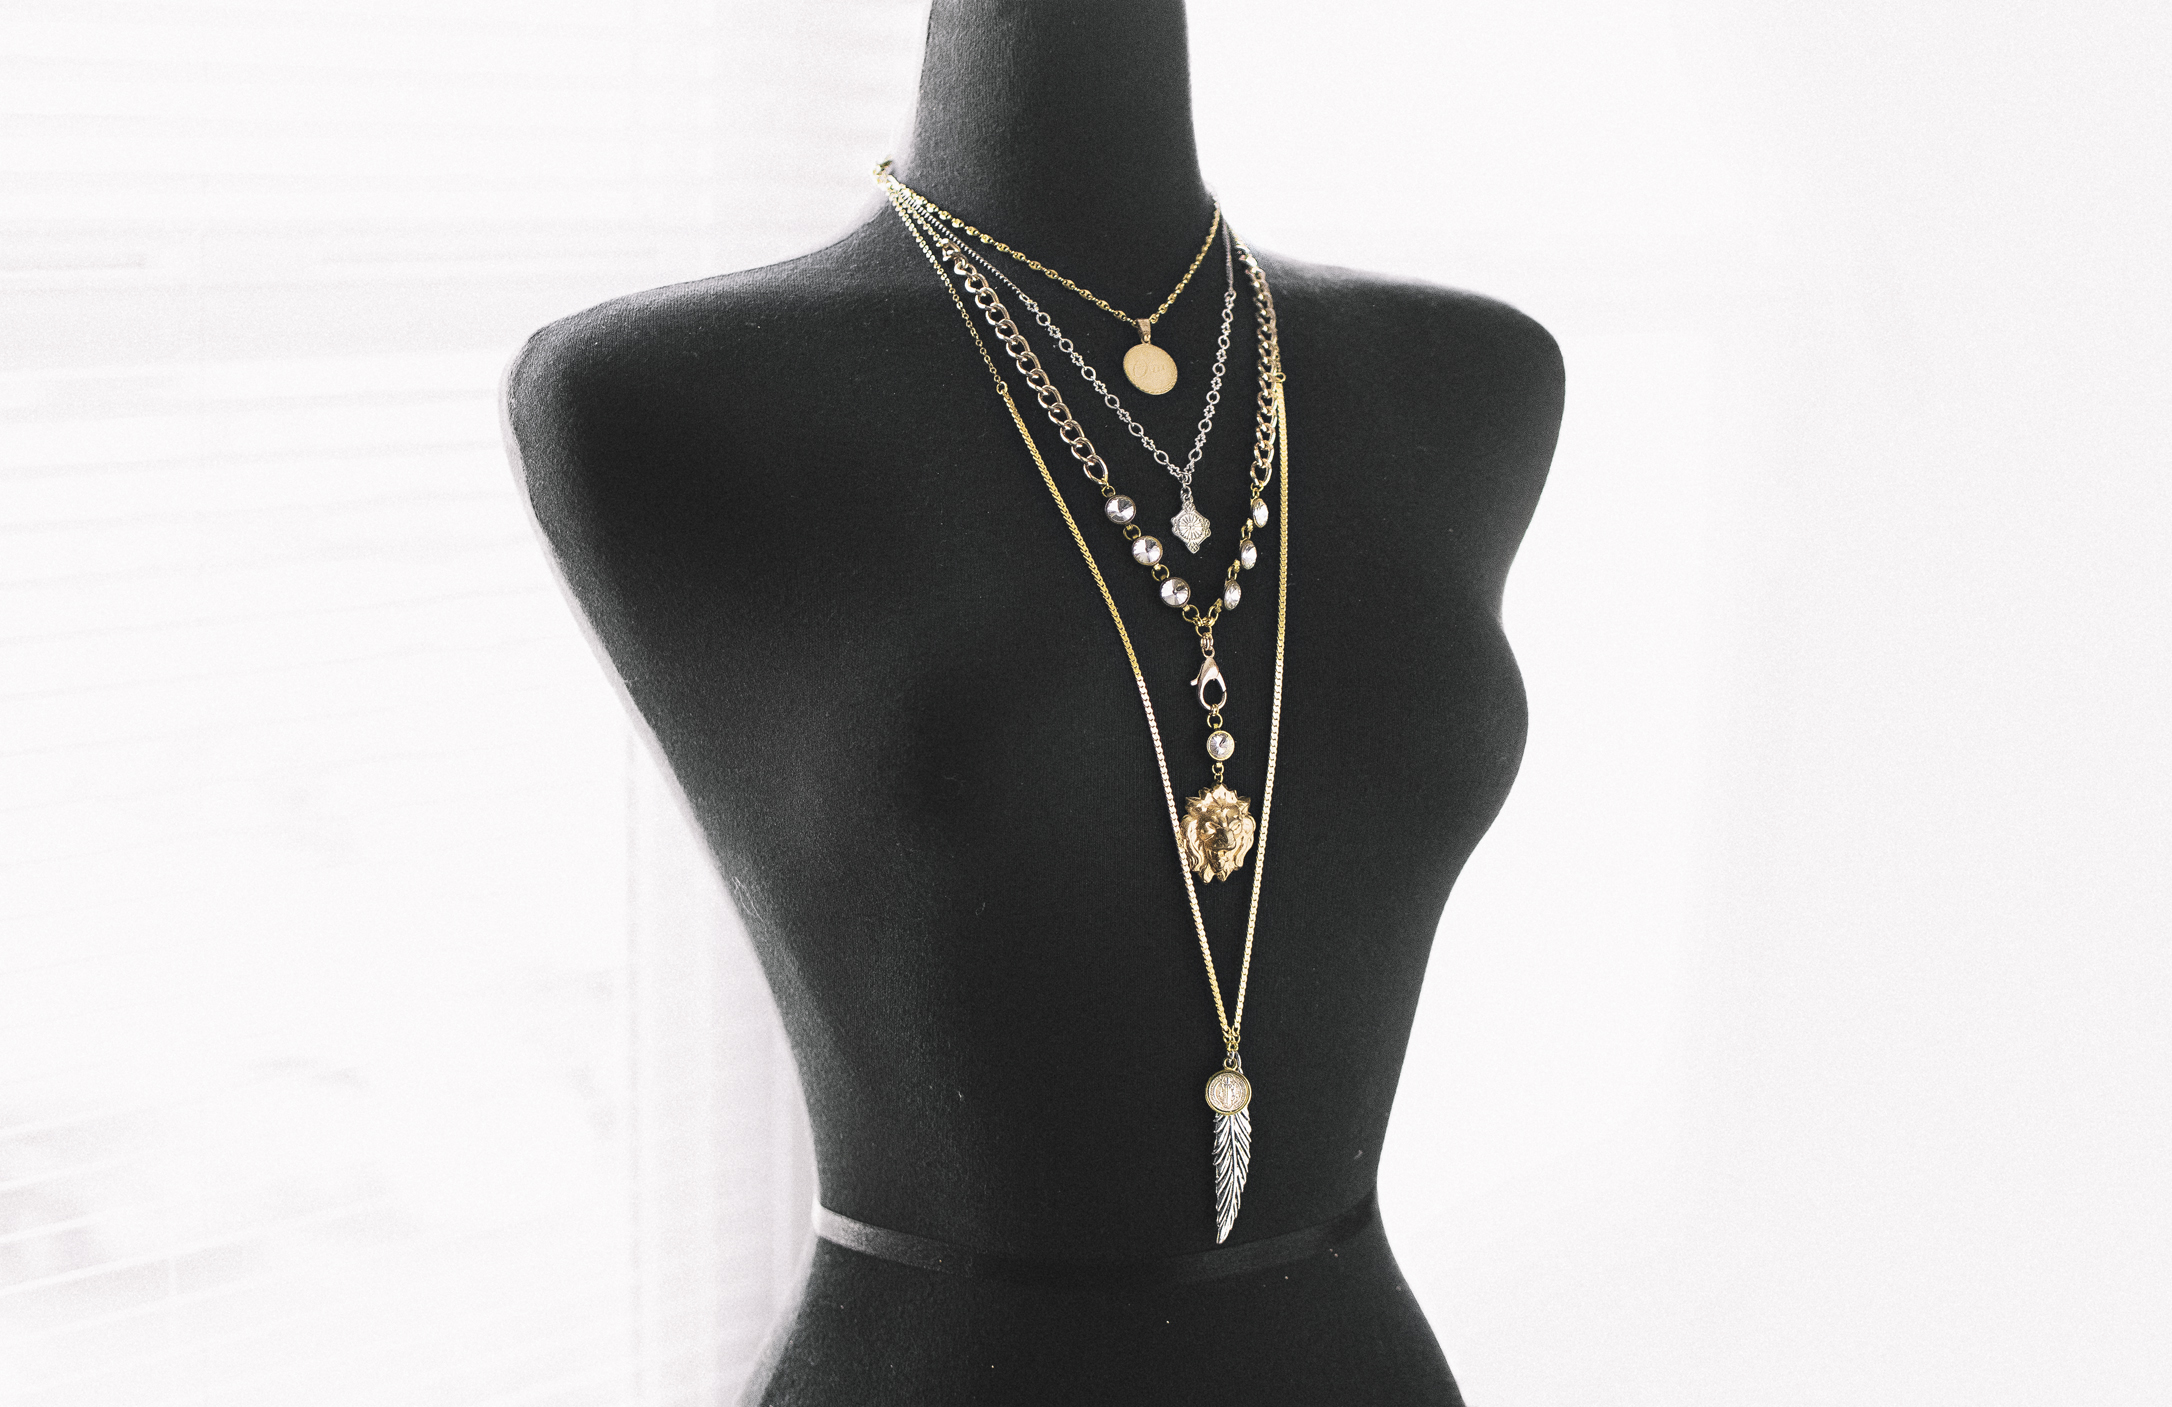 diy layered necklace by Quiet Lion Creations